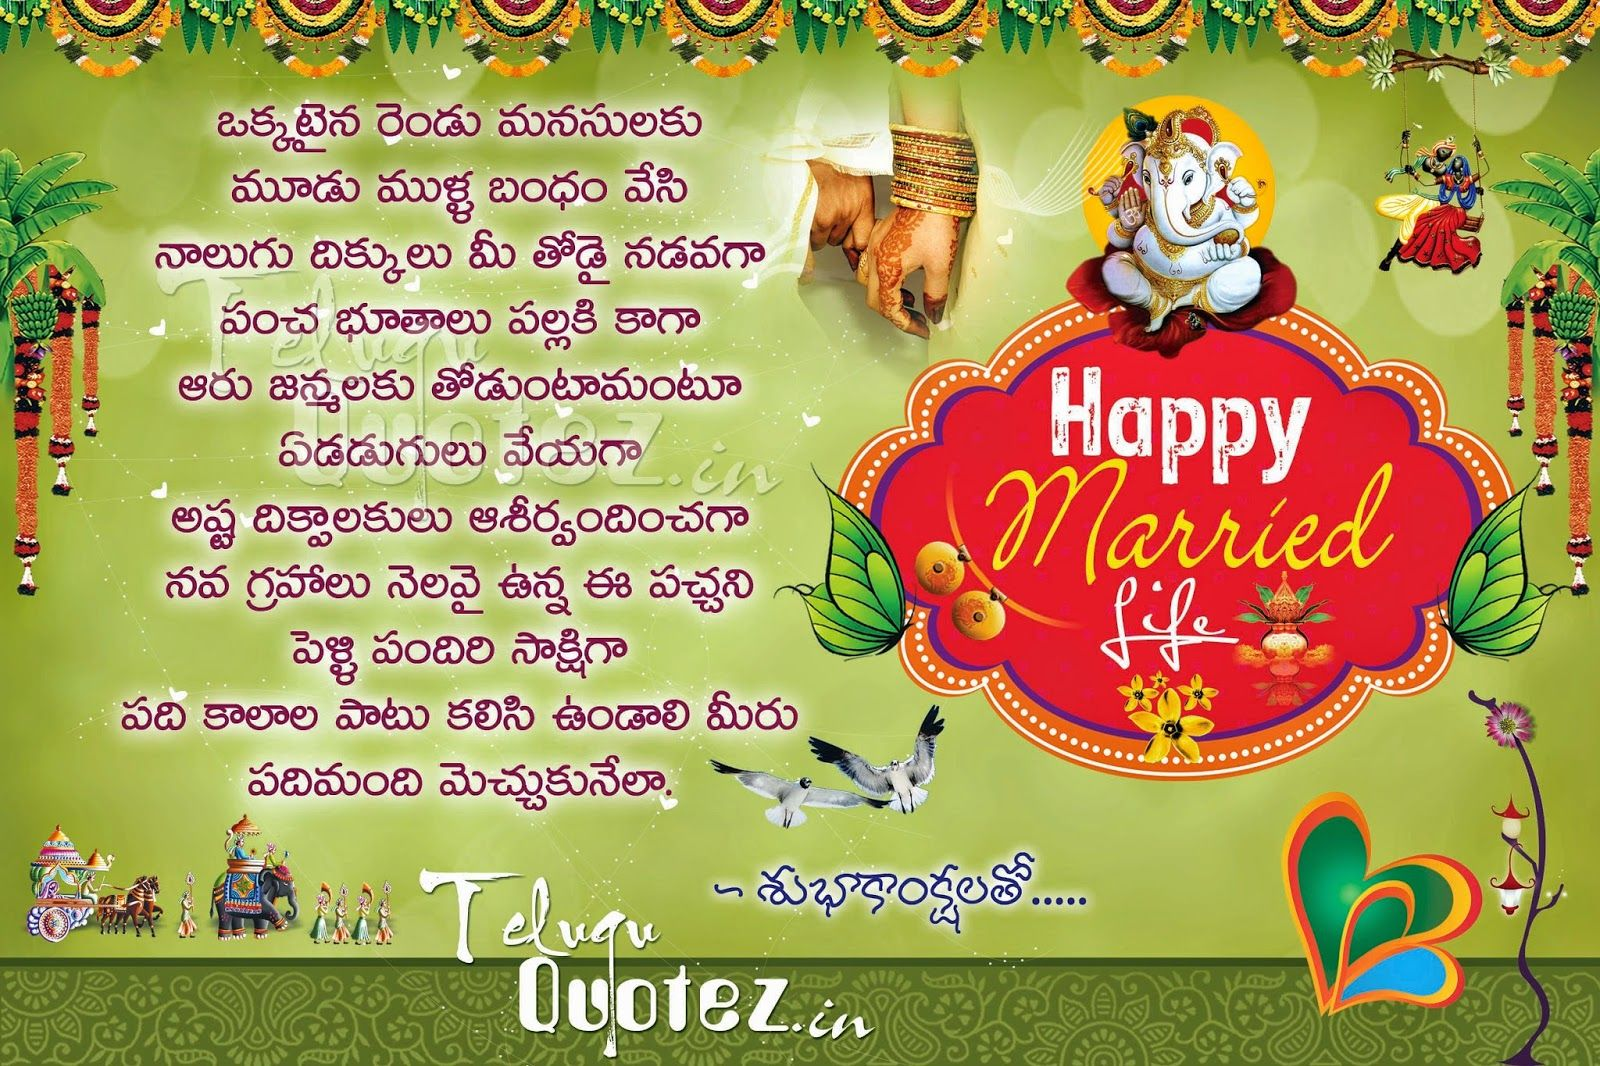 Teluguquotez wedding wishes sairam pinterest telugu indian wedding telugu wishes for couples kristyandbryce Gallery